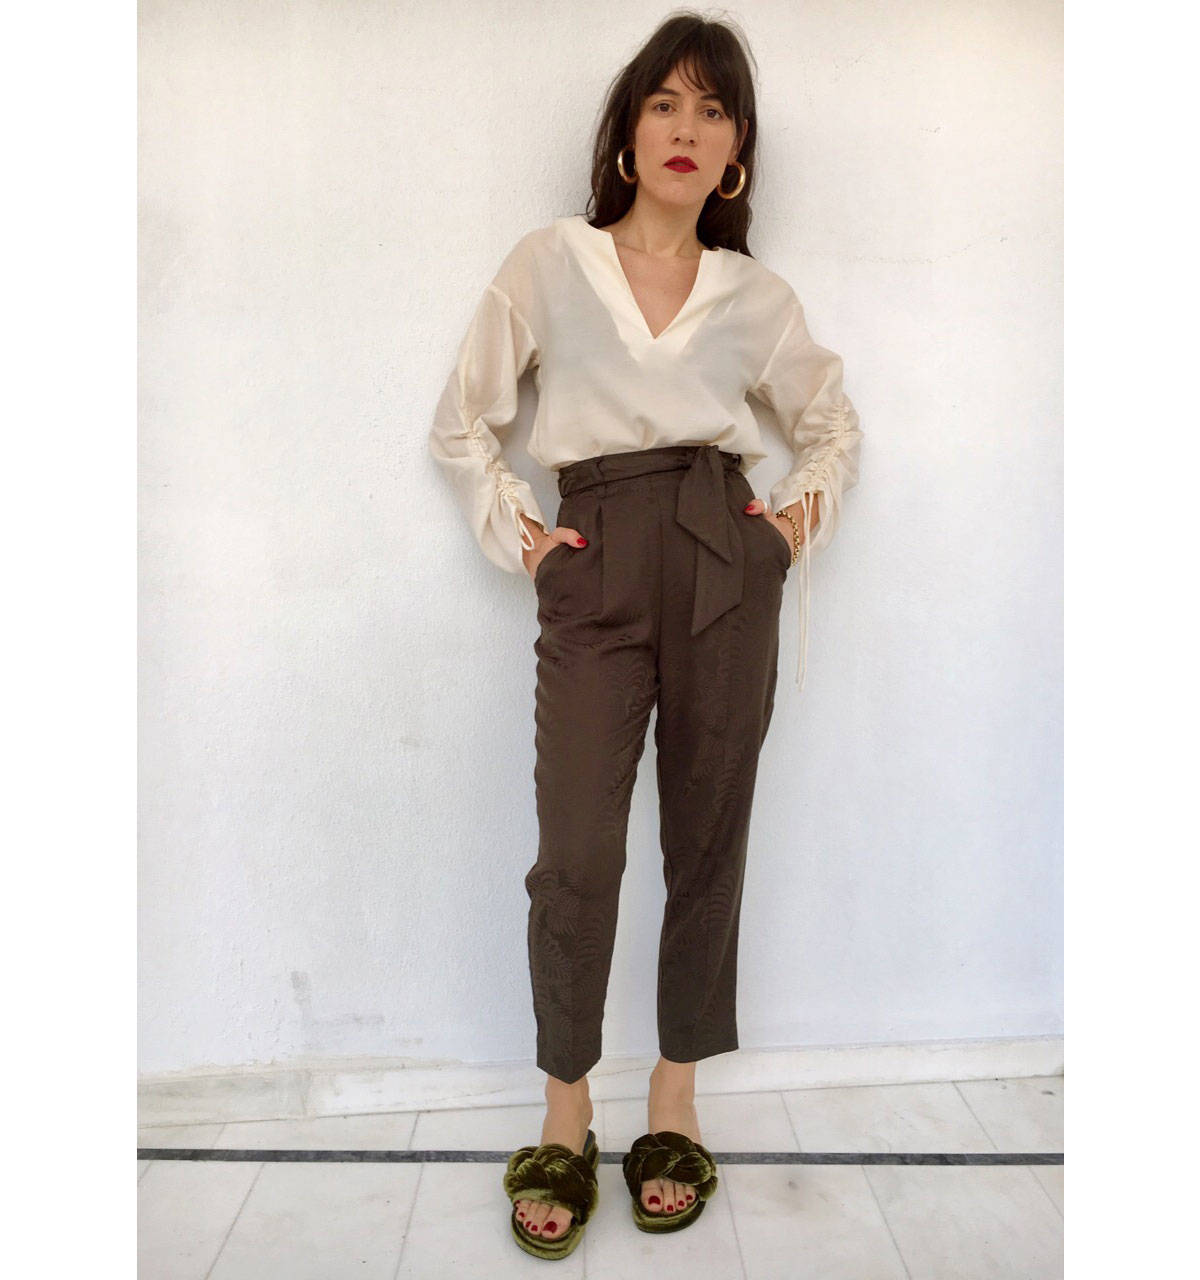 ysmf-hm-cargo-pants-white-blouse